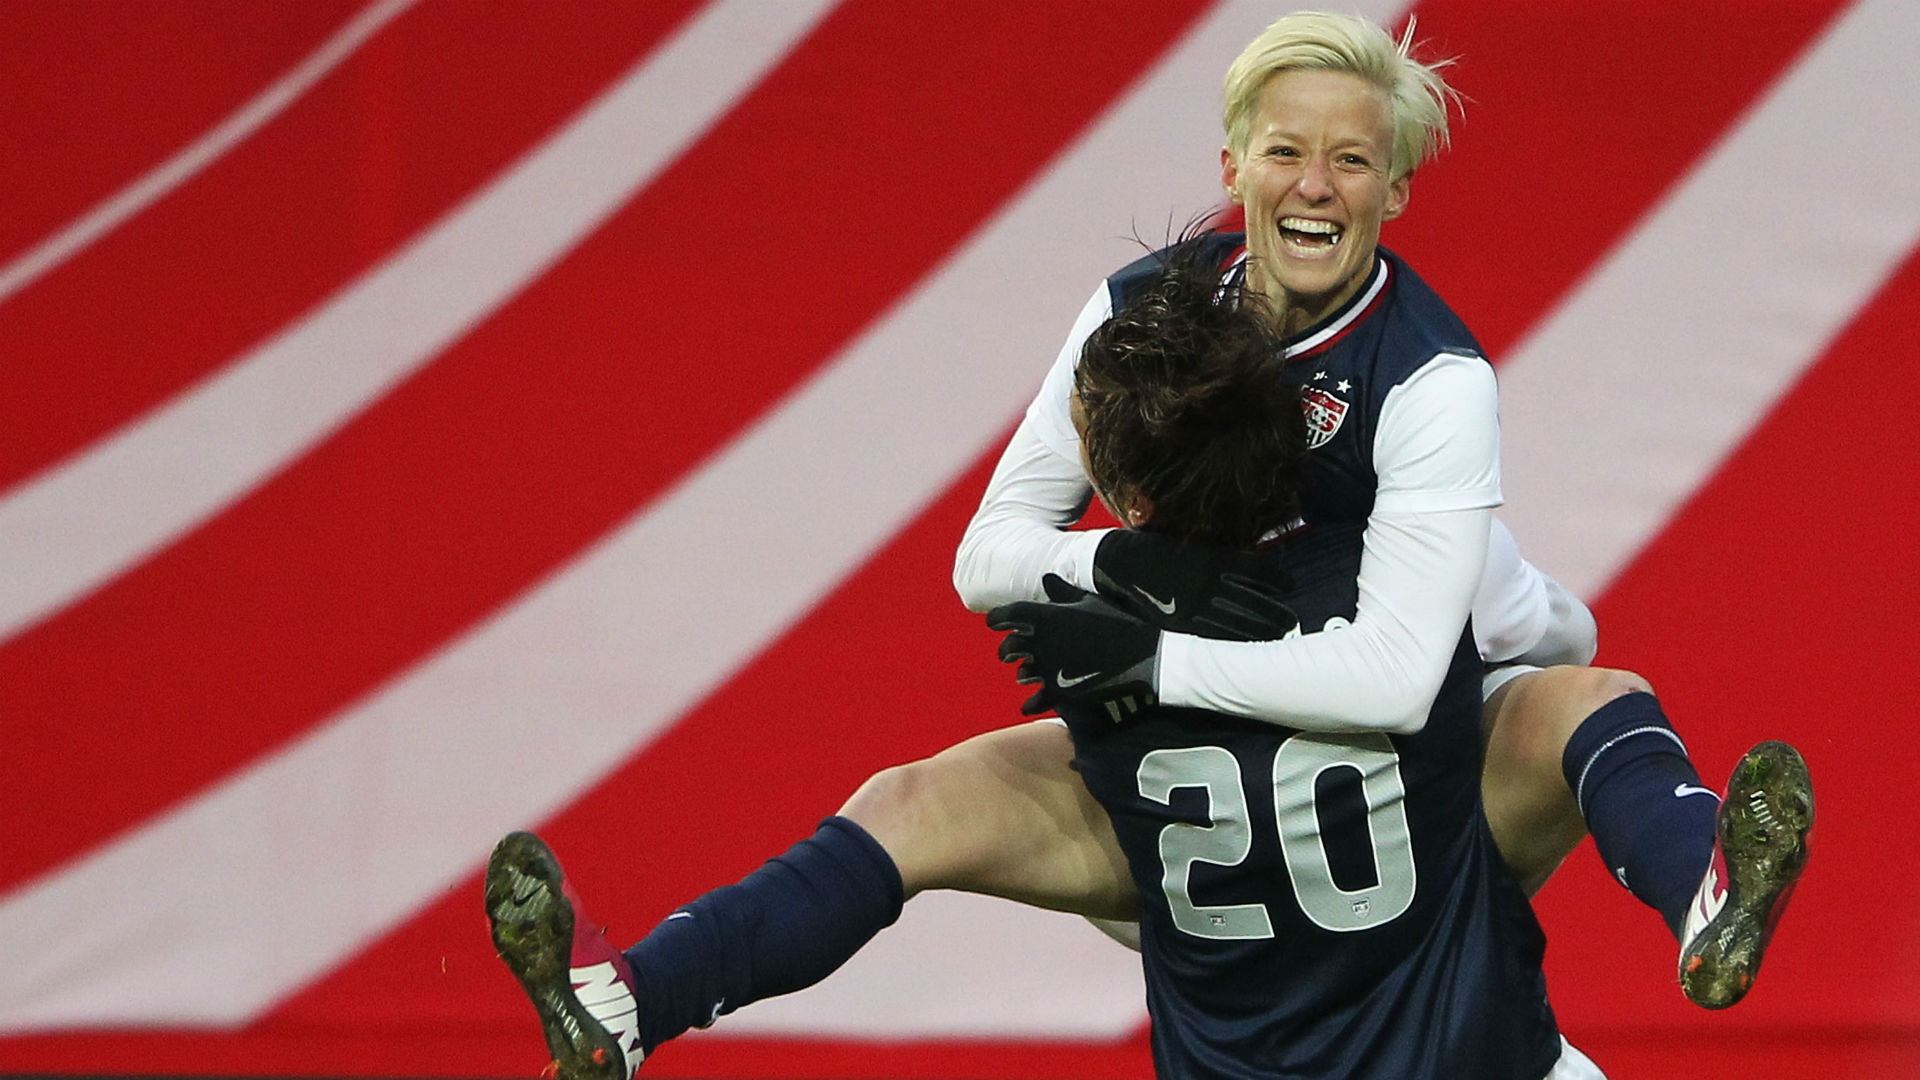 Megan Rapinoe Wallpapers and Background Images   stmednet 1920x1080